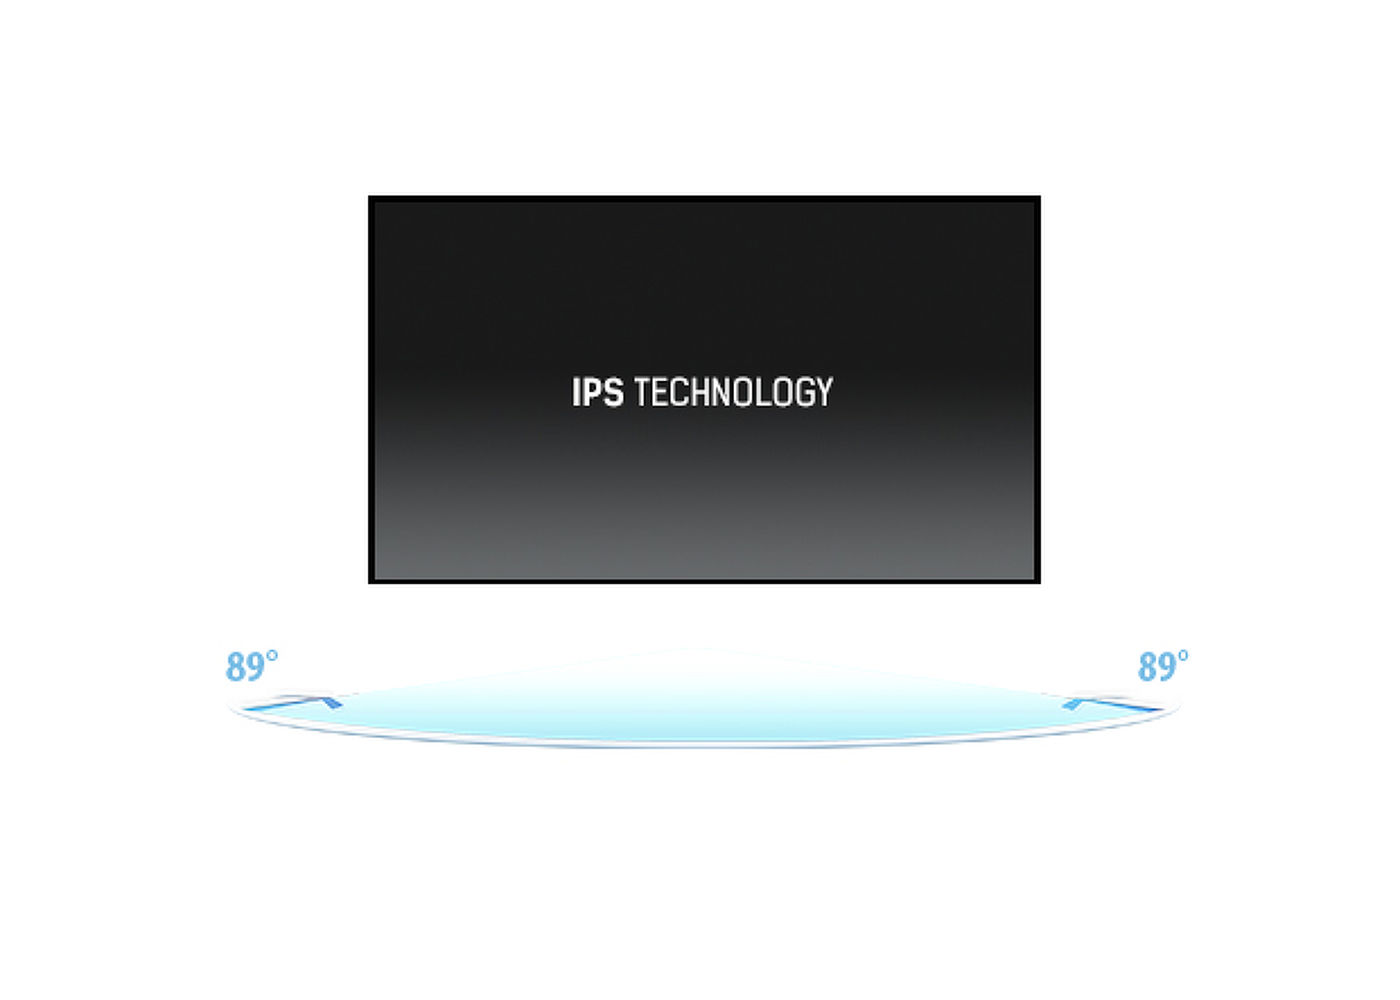 IPS TECHNOLOGY